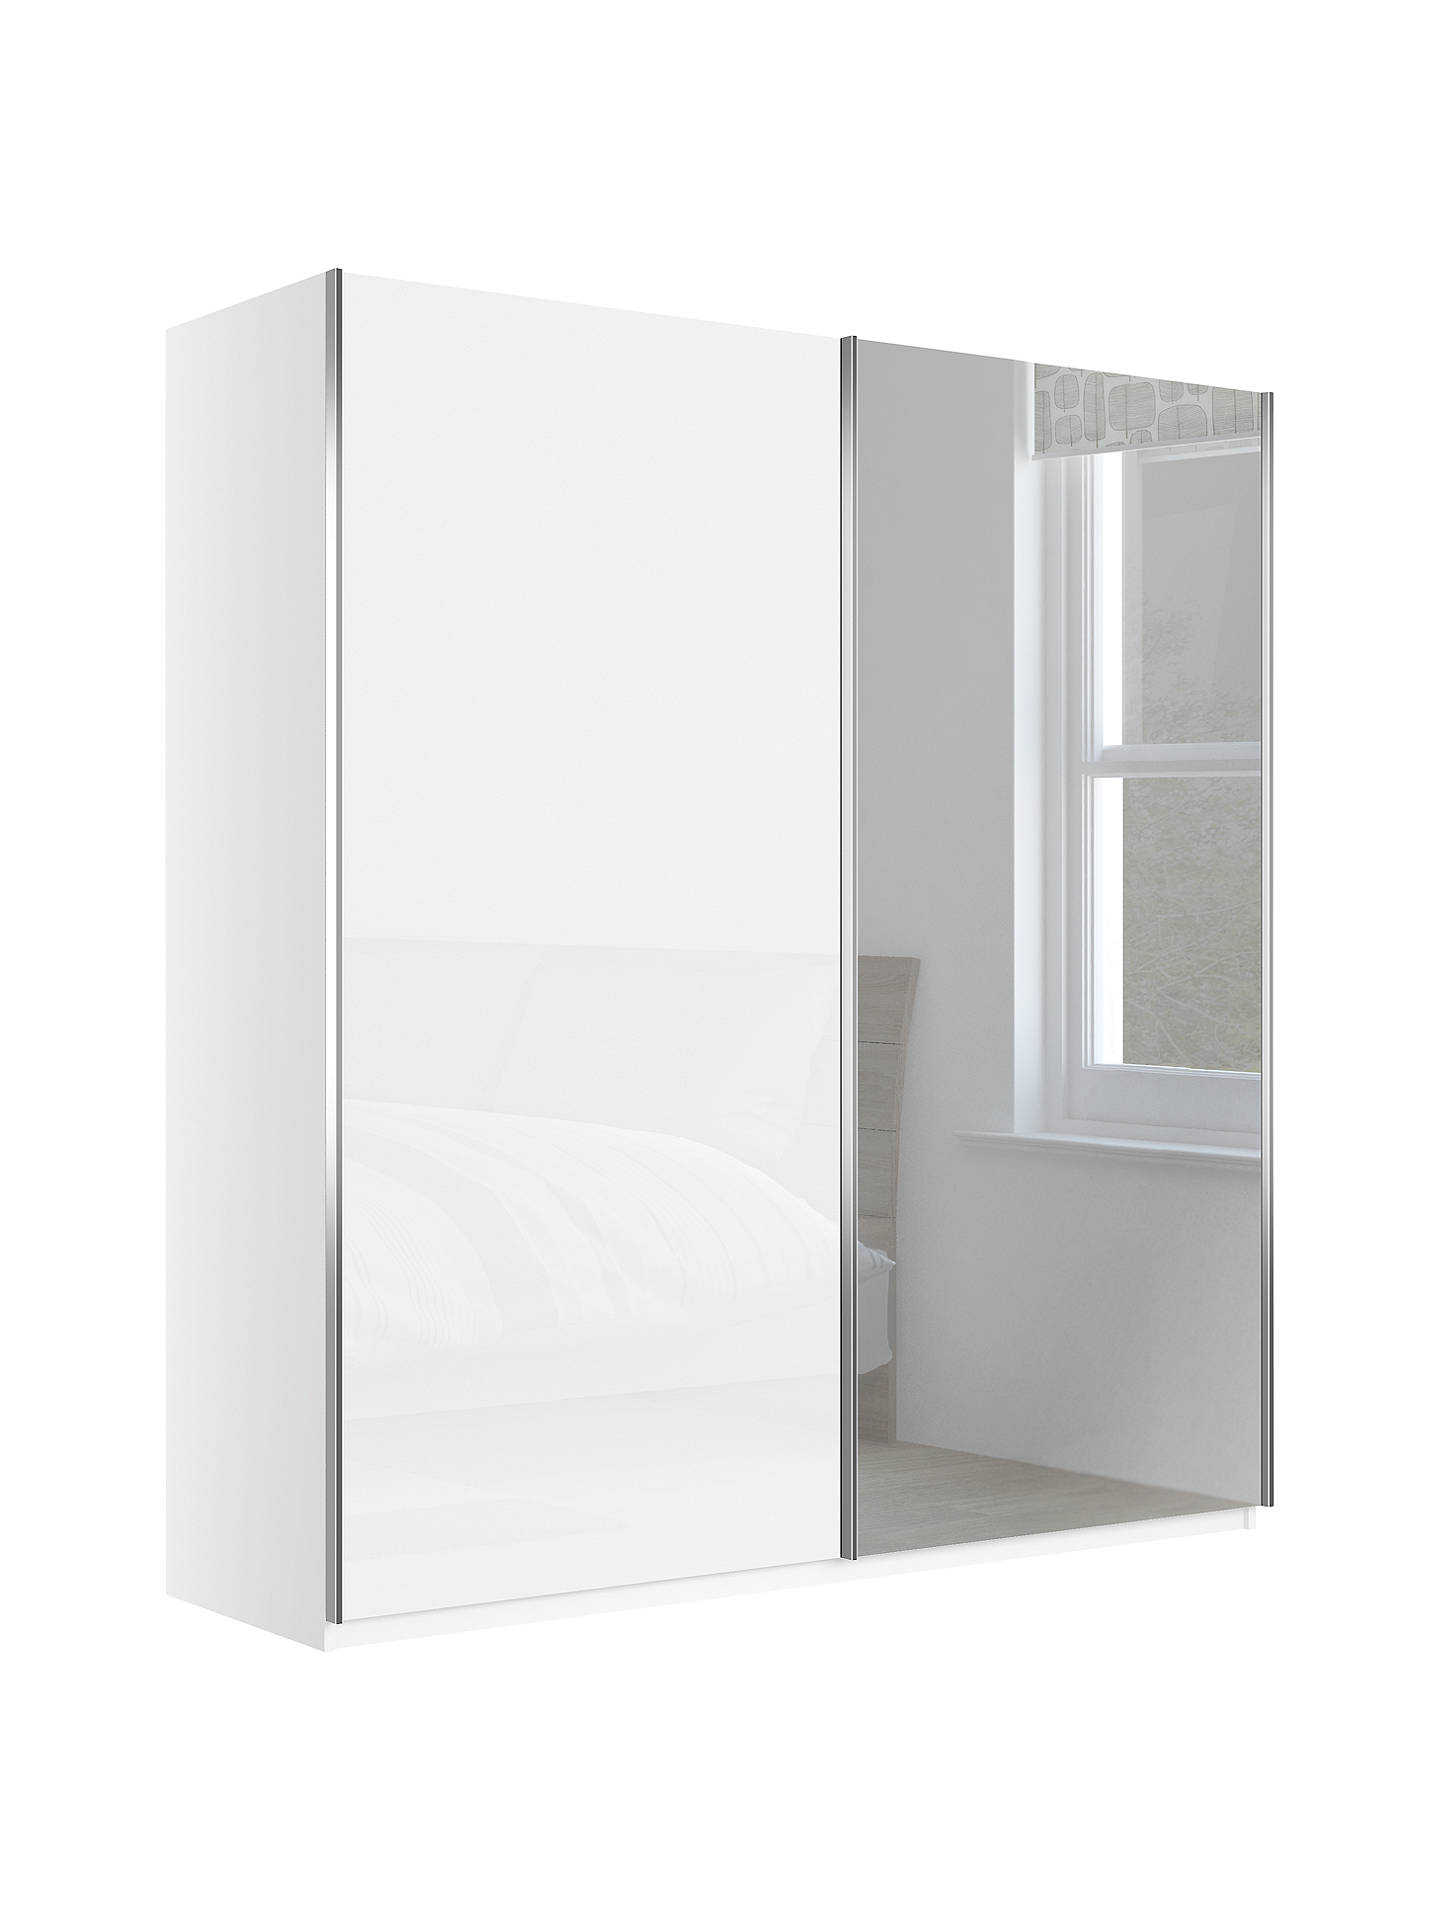 John Lewis Partners Elstra 200cm Wardrobe With Glass And Mirrored